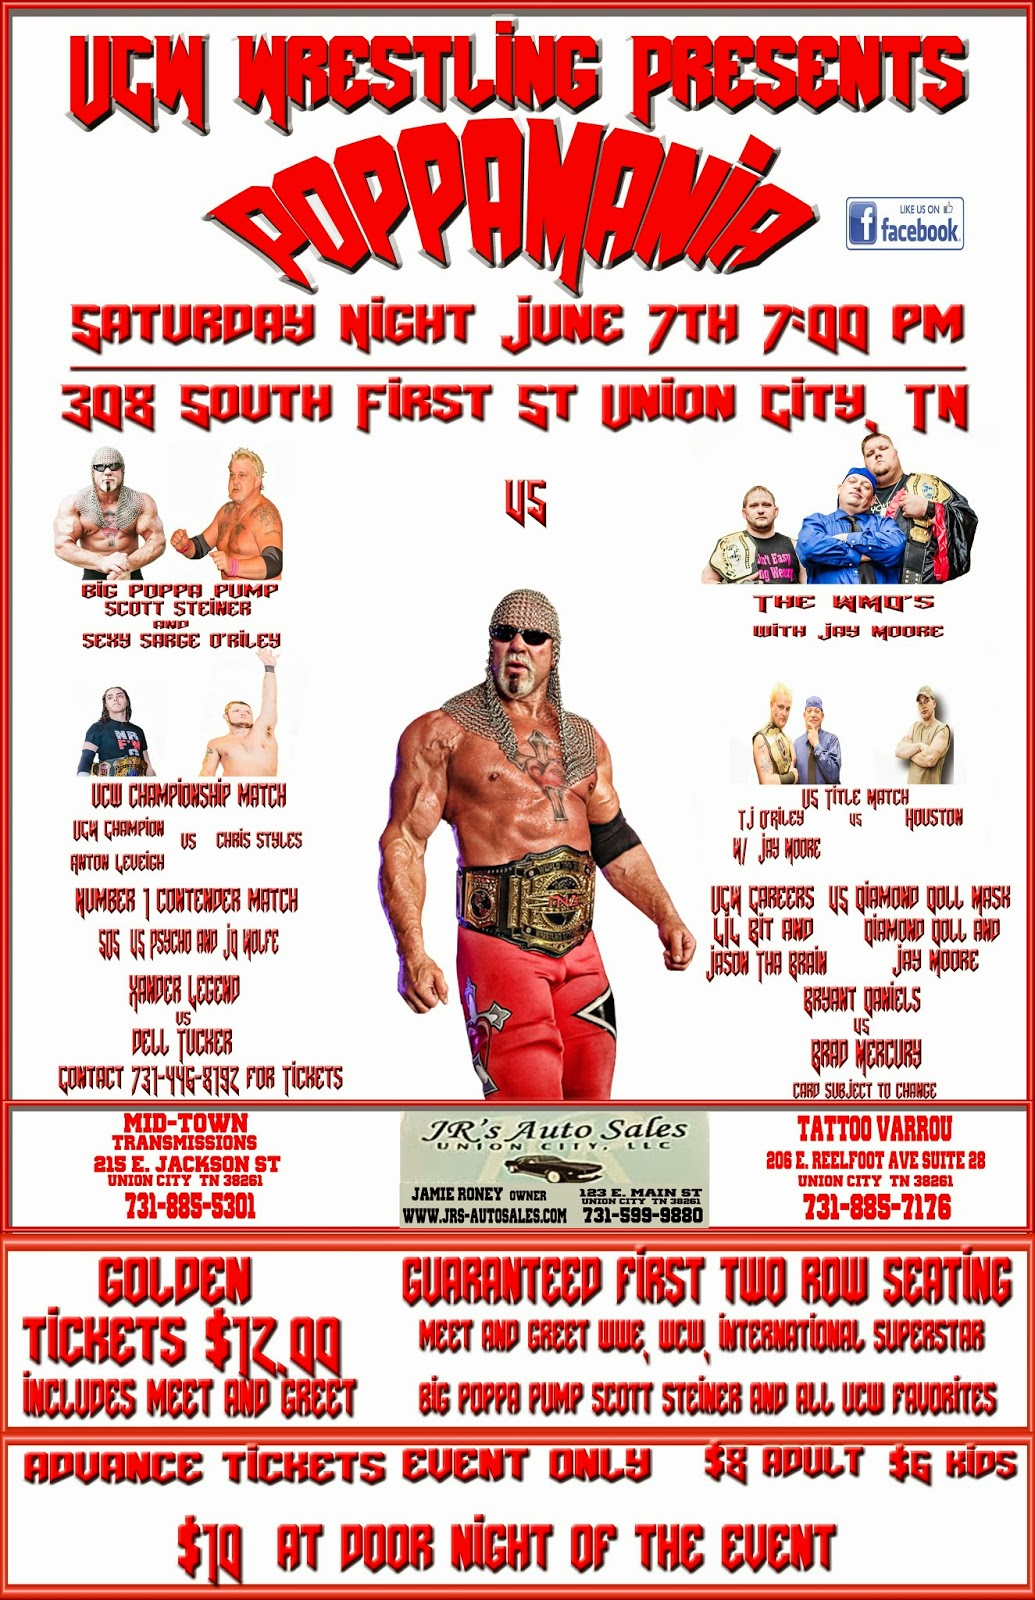 wrestling news center ucw union city tn final poppamania card announced for june 7th. Black Bedroom Furniture Sets. Home Design Ideas